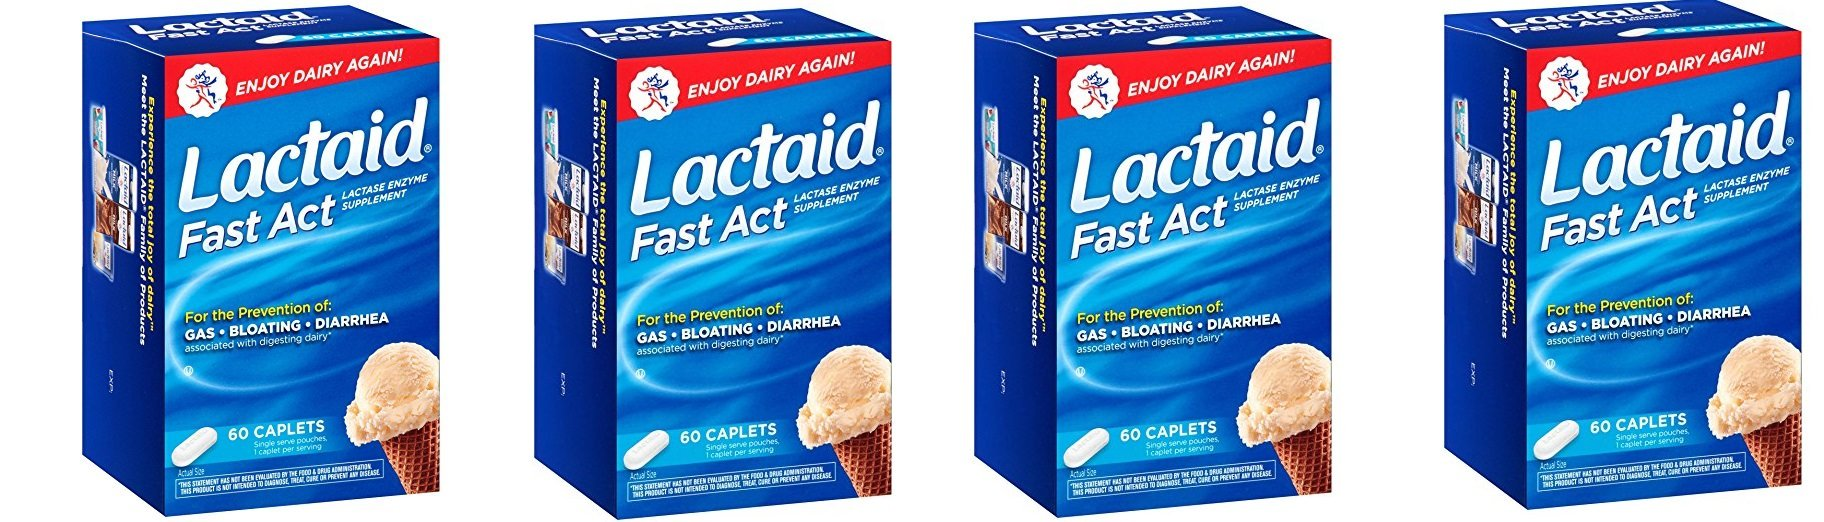 Lactaid, Fast Act Caplets, 60 BixMDx Count (Pack of 4) by